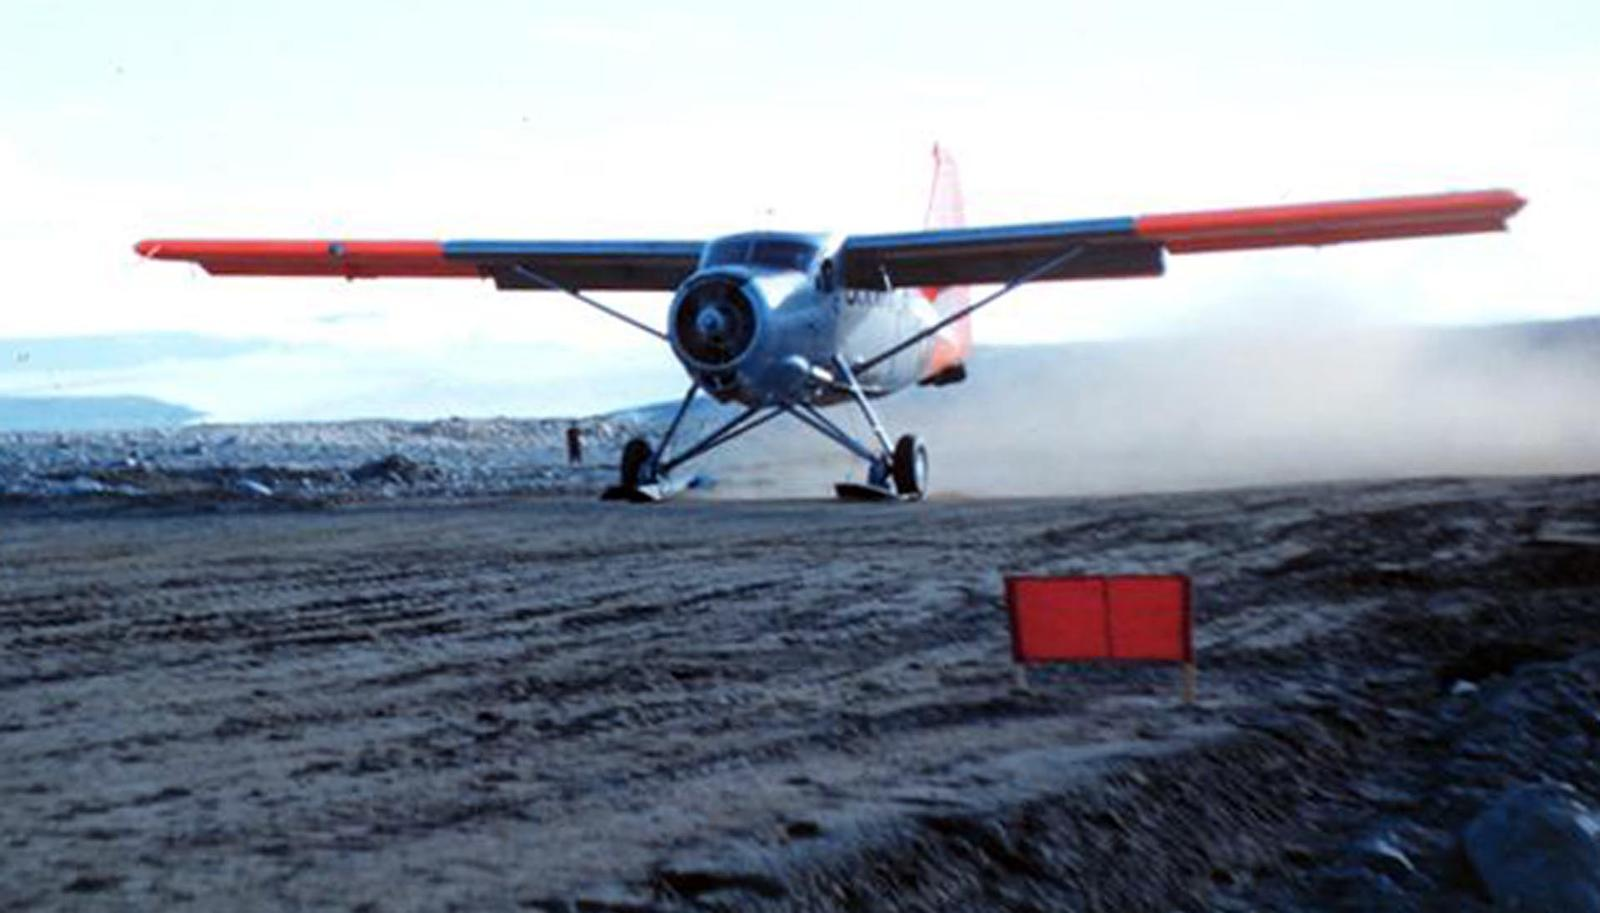 Old-style plane lands on dirt runway.